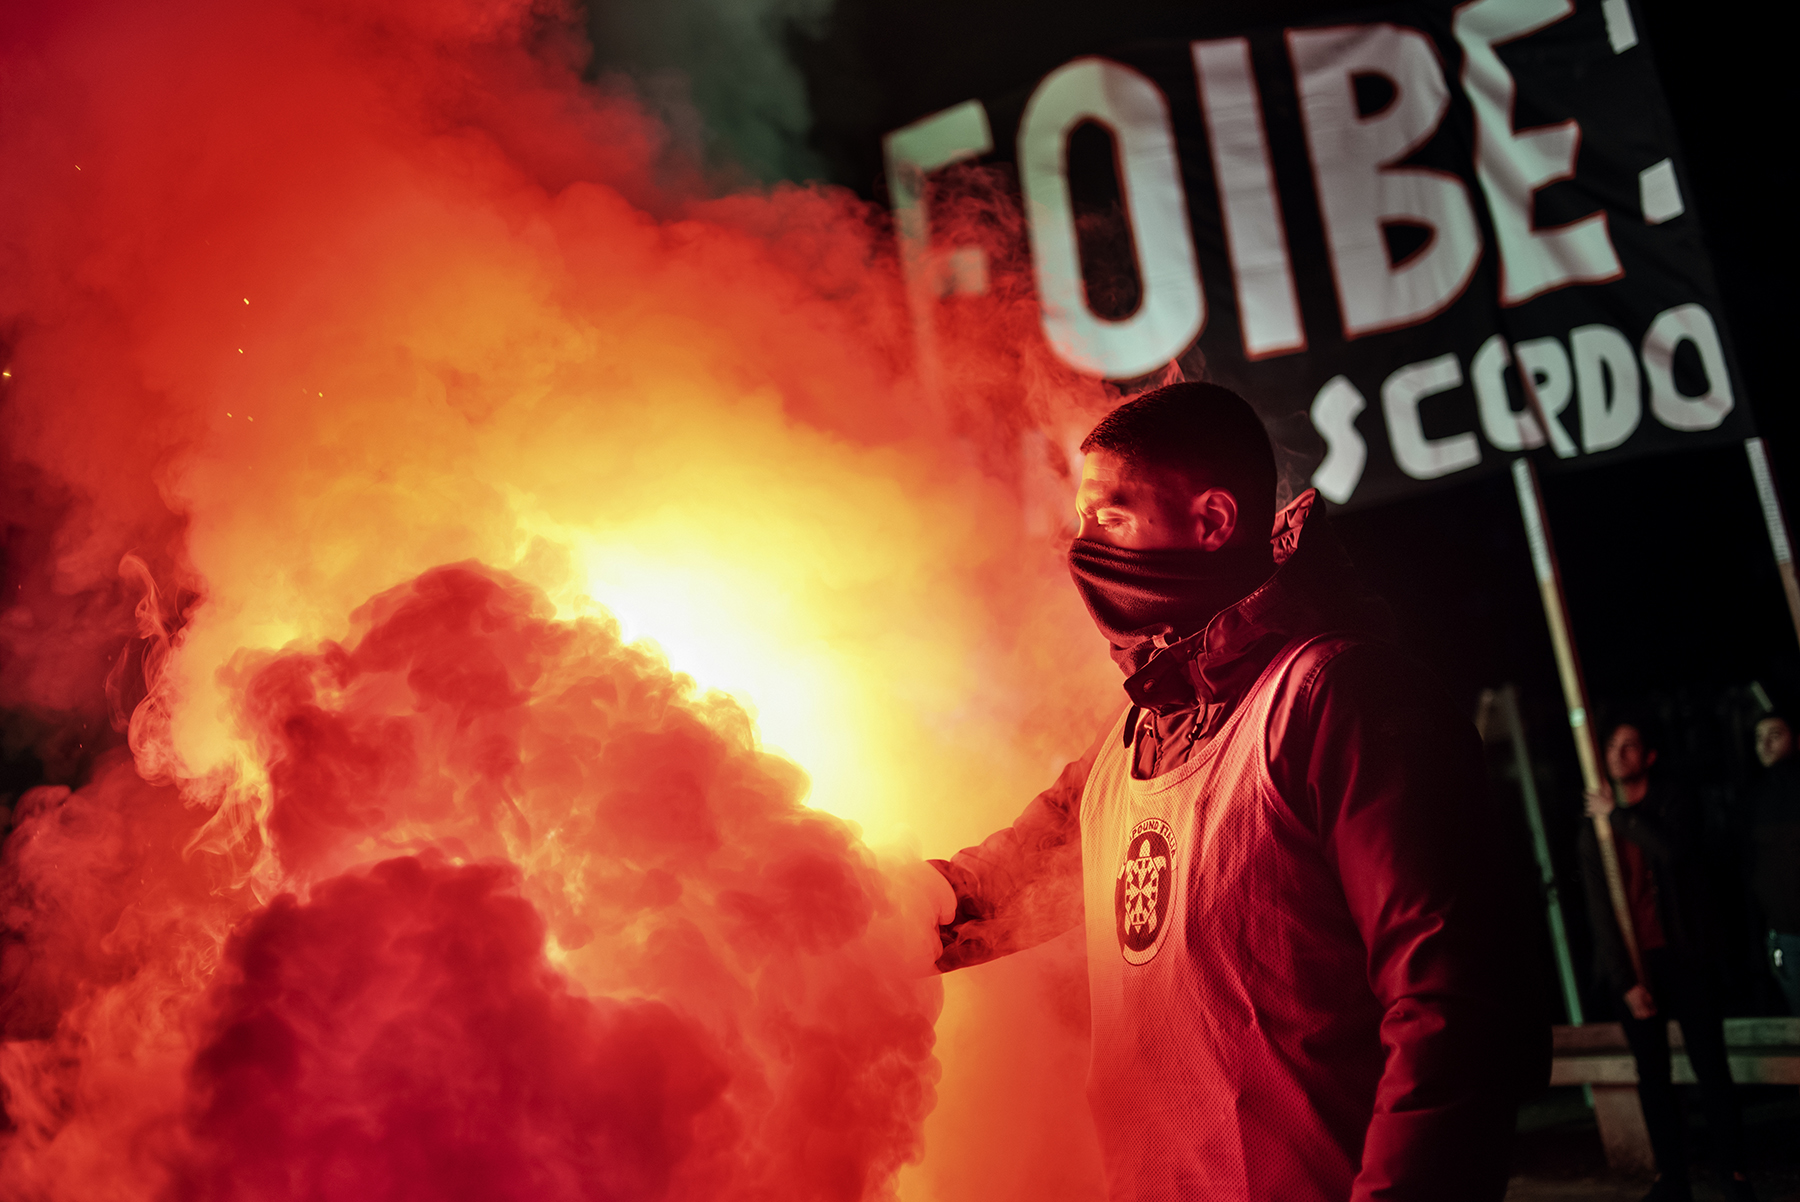 """A supporter of Italian far-right party CasaPound lights up a smoke bomb in front of a banner reading """"Foibe - I don't forget"""" during the National Memorial Day of the Foibe, which remember the victims of the so called foibe massacres, in Rome, Italy, on February 09, 2019."""